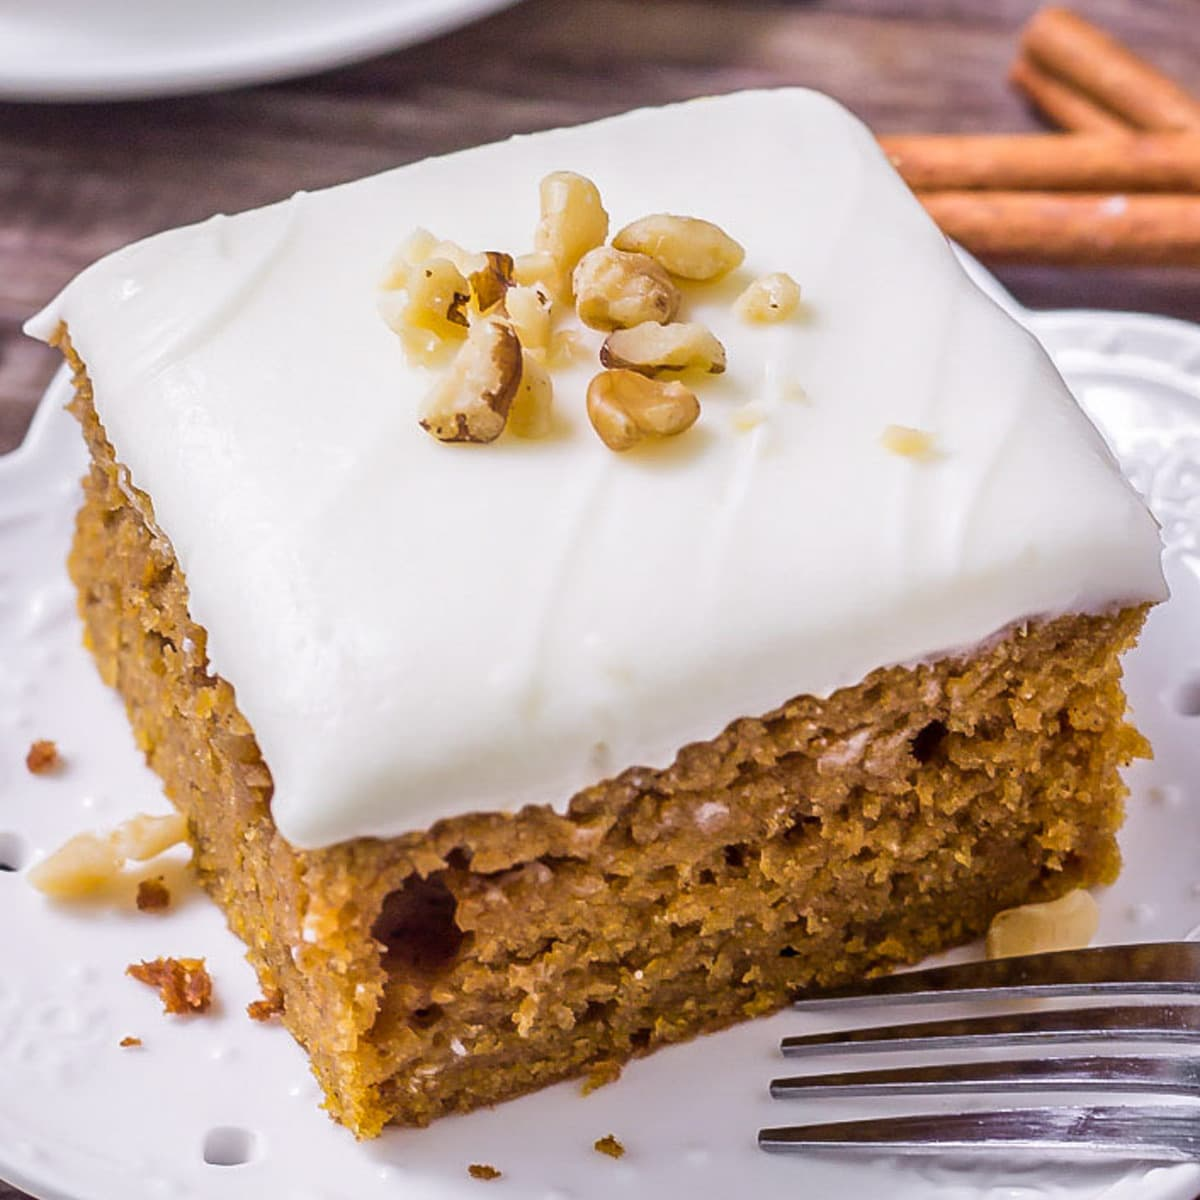 slice of Pumpkin Cake on a plate